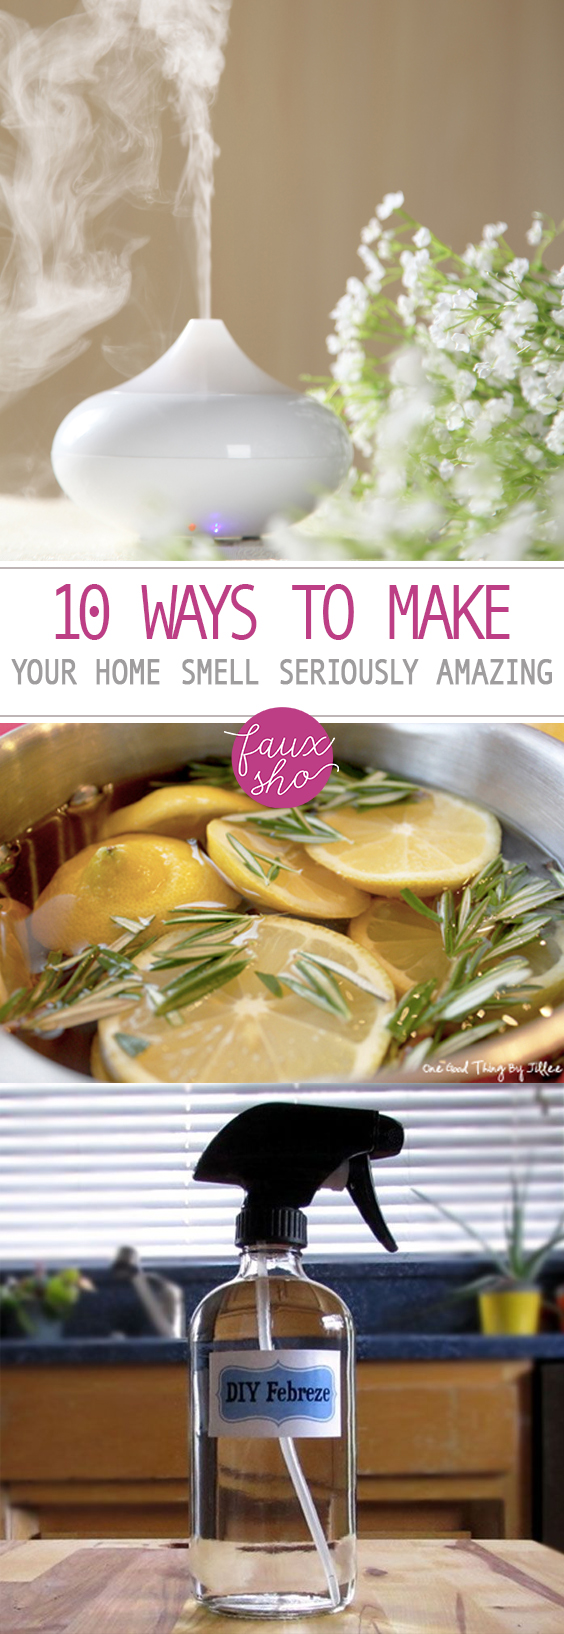 10 Ways to Make Your Home Smell Seriously Amazing| Smell Hacks, Smell Hacks for Your Home, Life Hacks, Home Cleaning, Home Cleaning Hacks, Cleaning Tips, Cleaning Tricks, Smell Hacks, How to Make Your Home Smell Good #smellhacks #cleaning #cleaninghacks #home #homecleaning